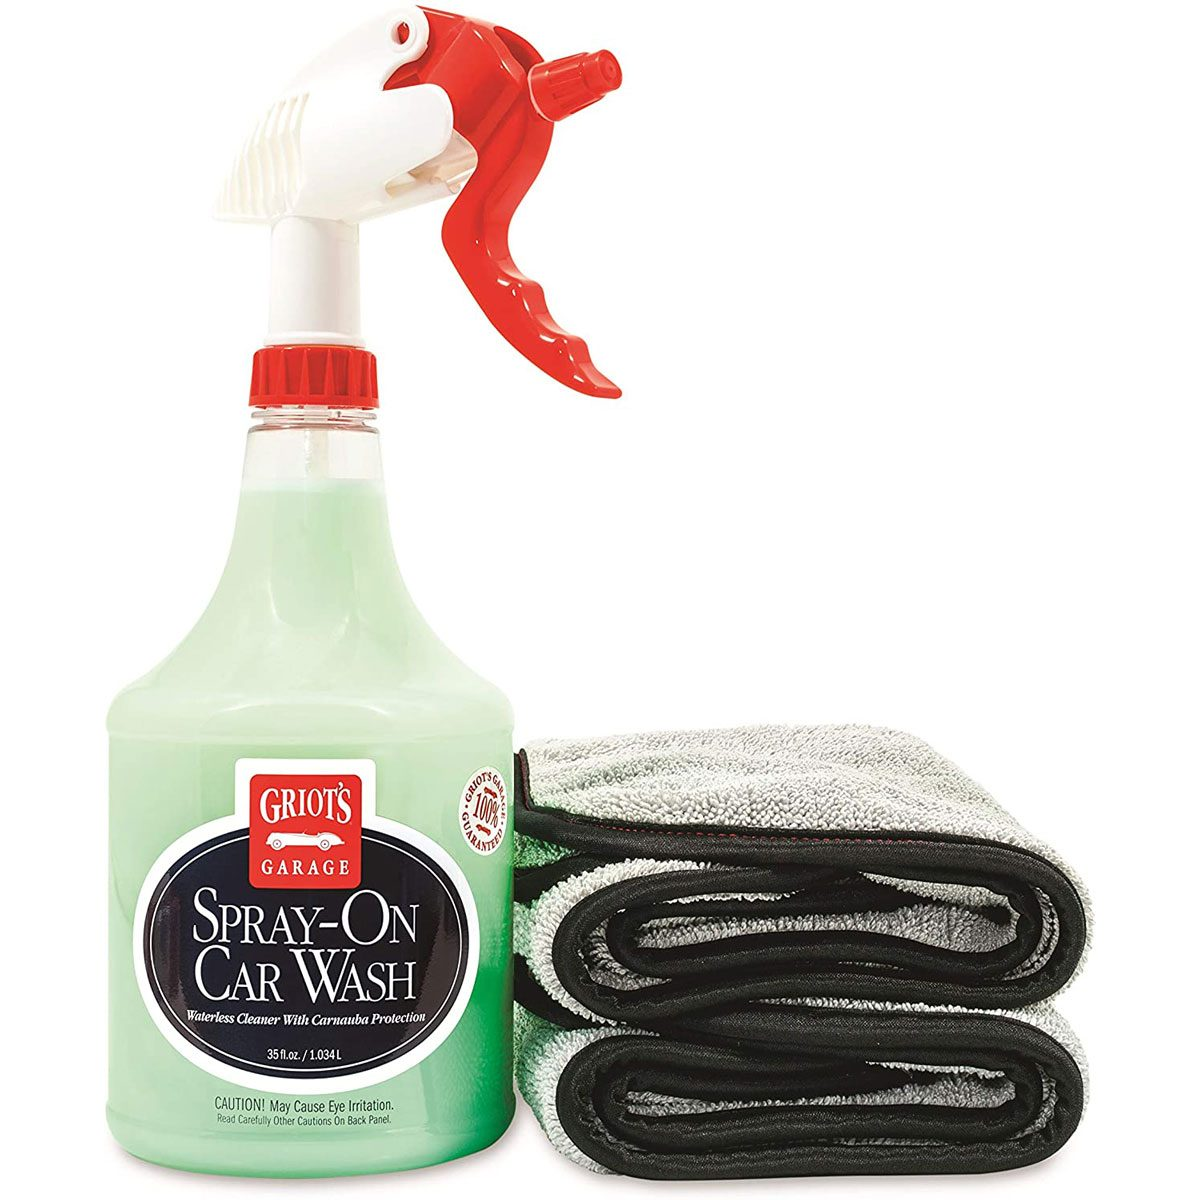 Griot's Garage cleaning spray